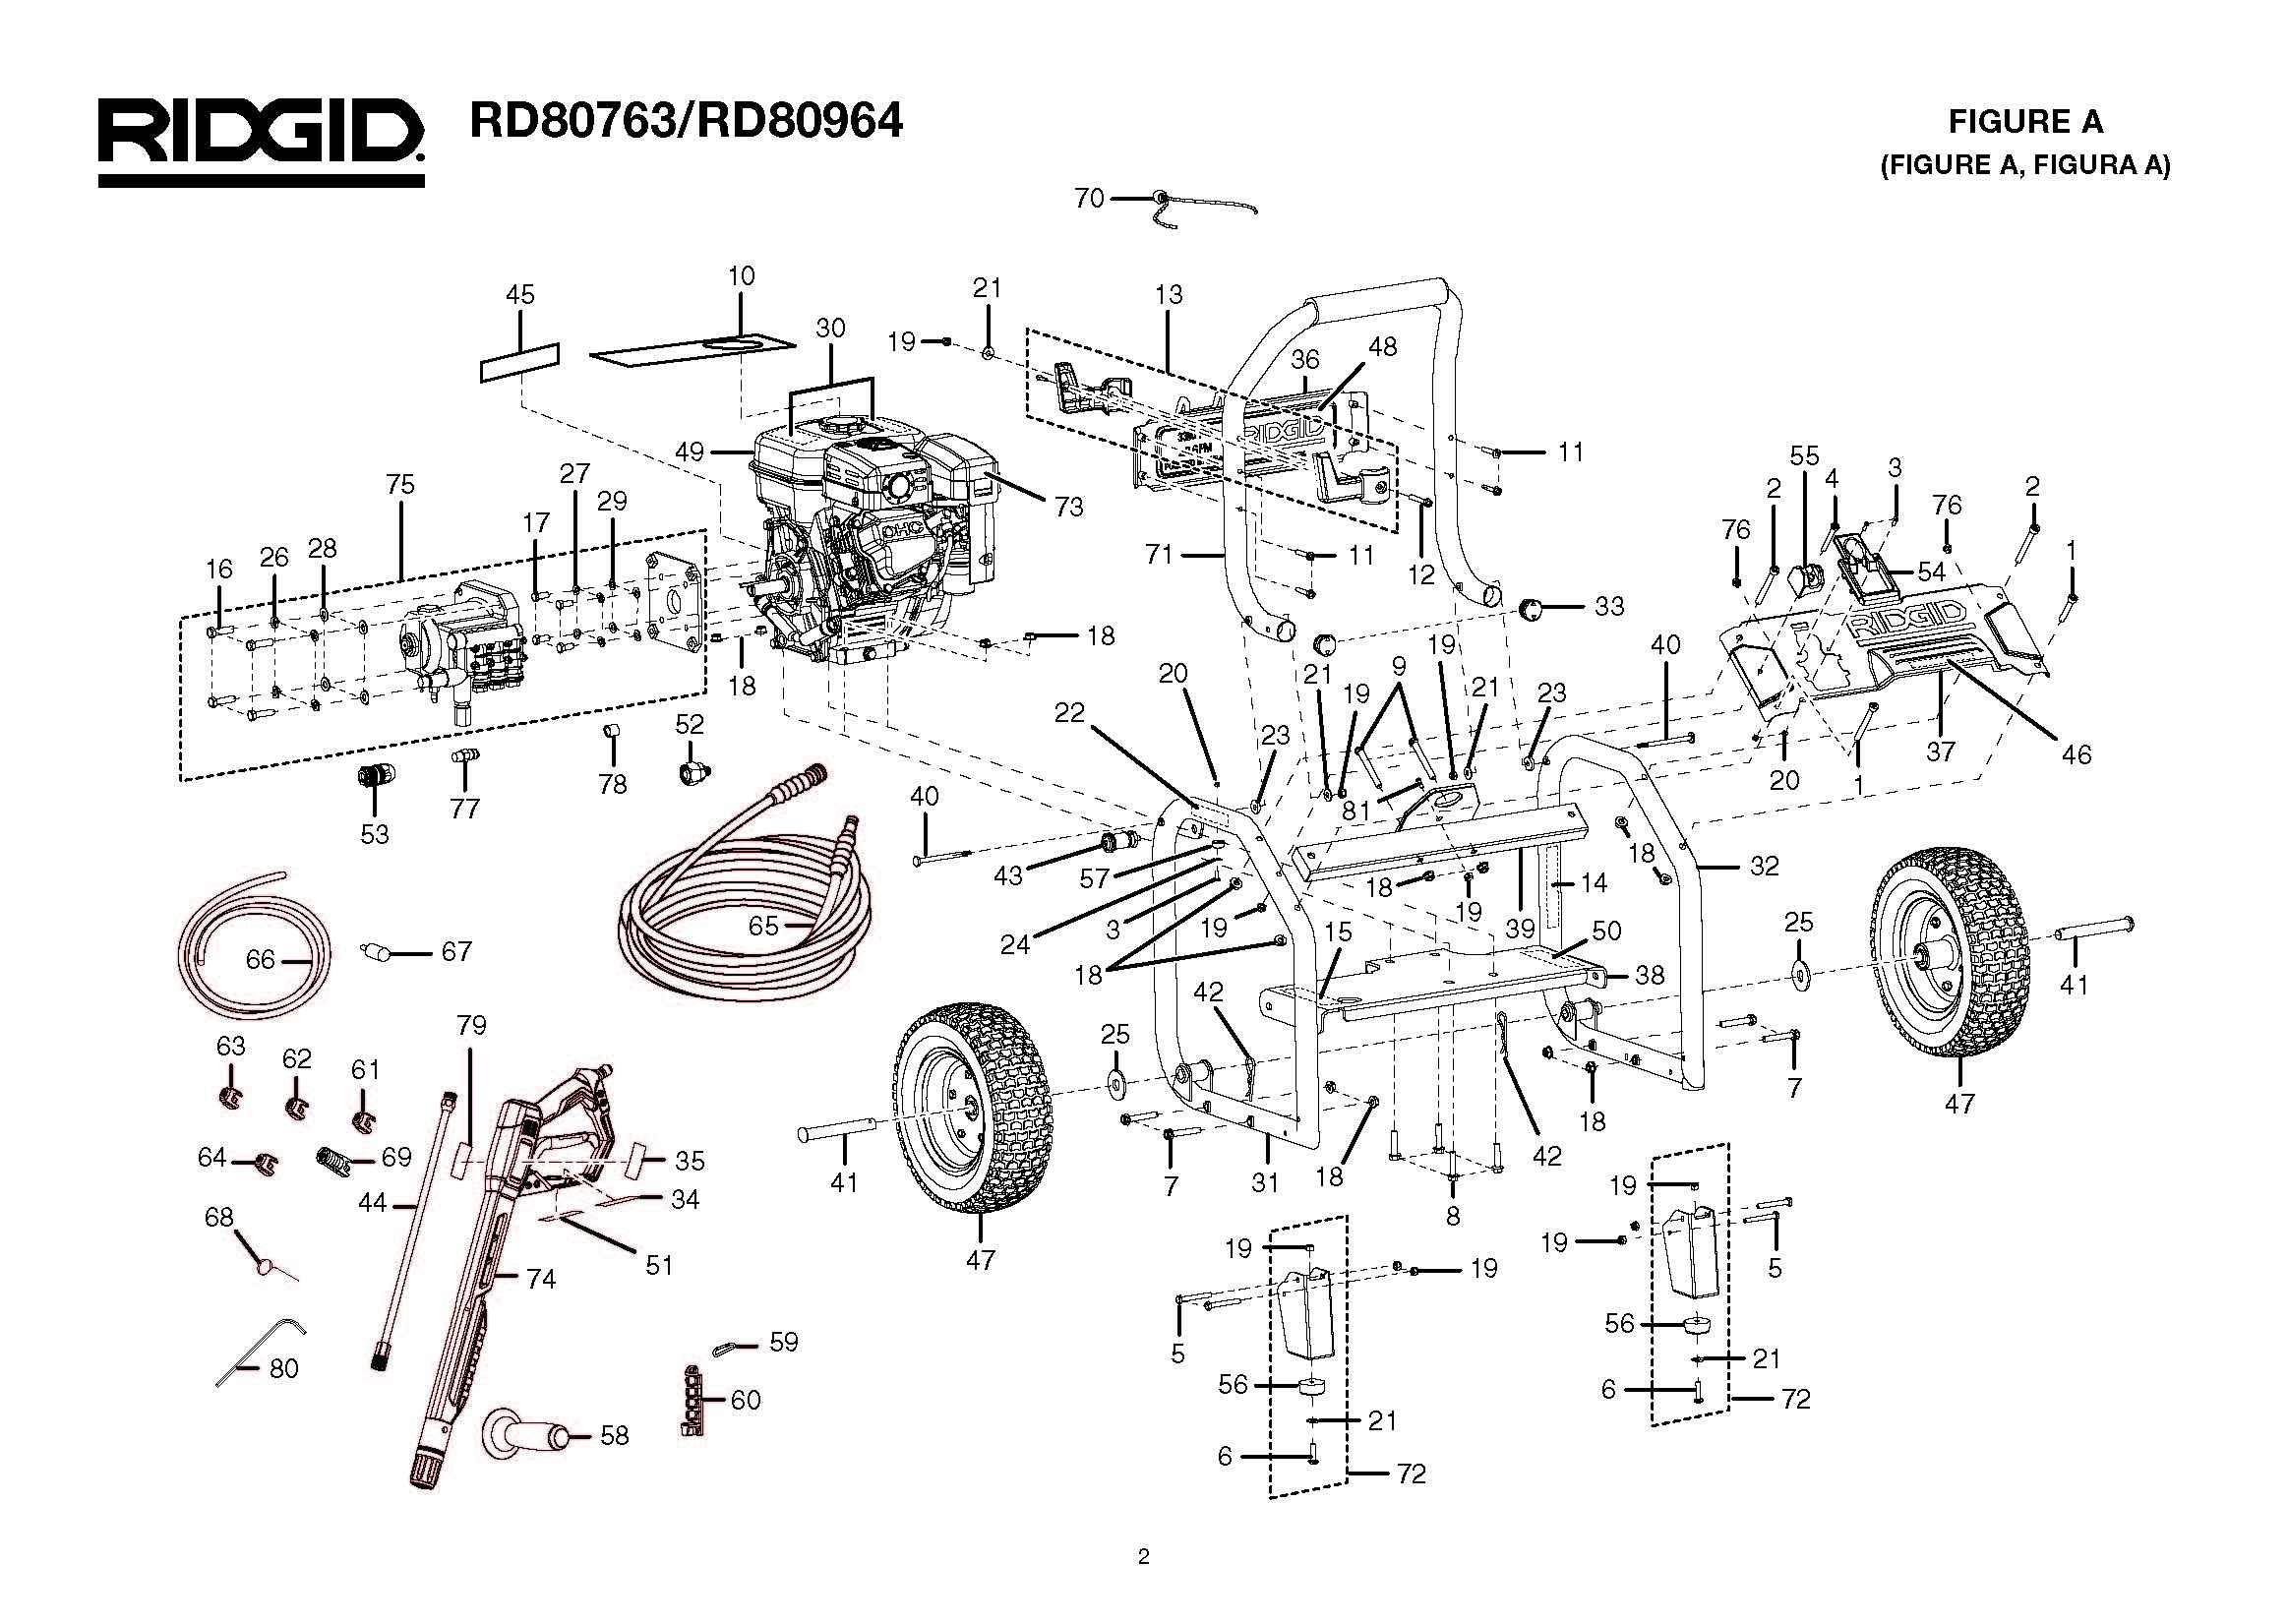 ridgid pressure washer parts diagram 1999 subaru impreza headlight wiring karcher diagrams